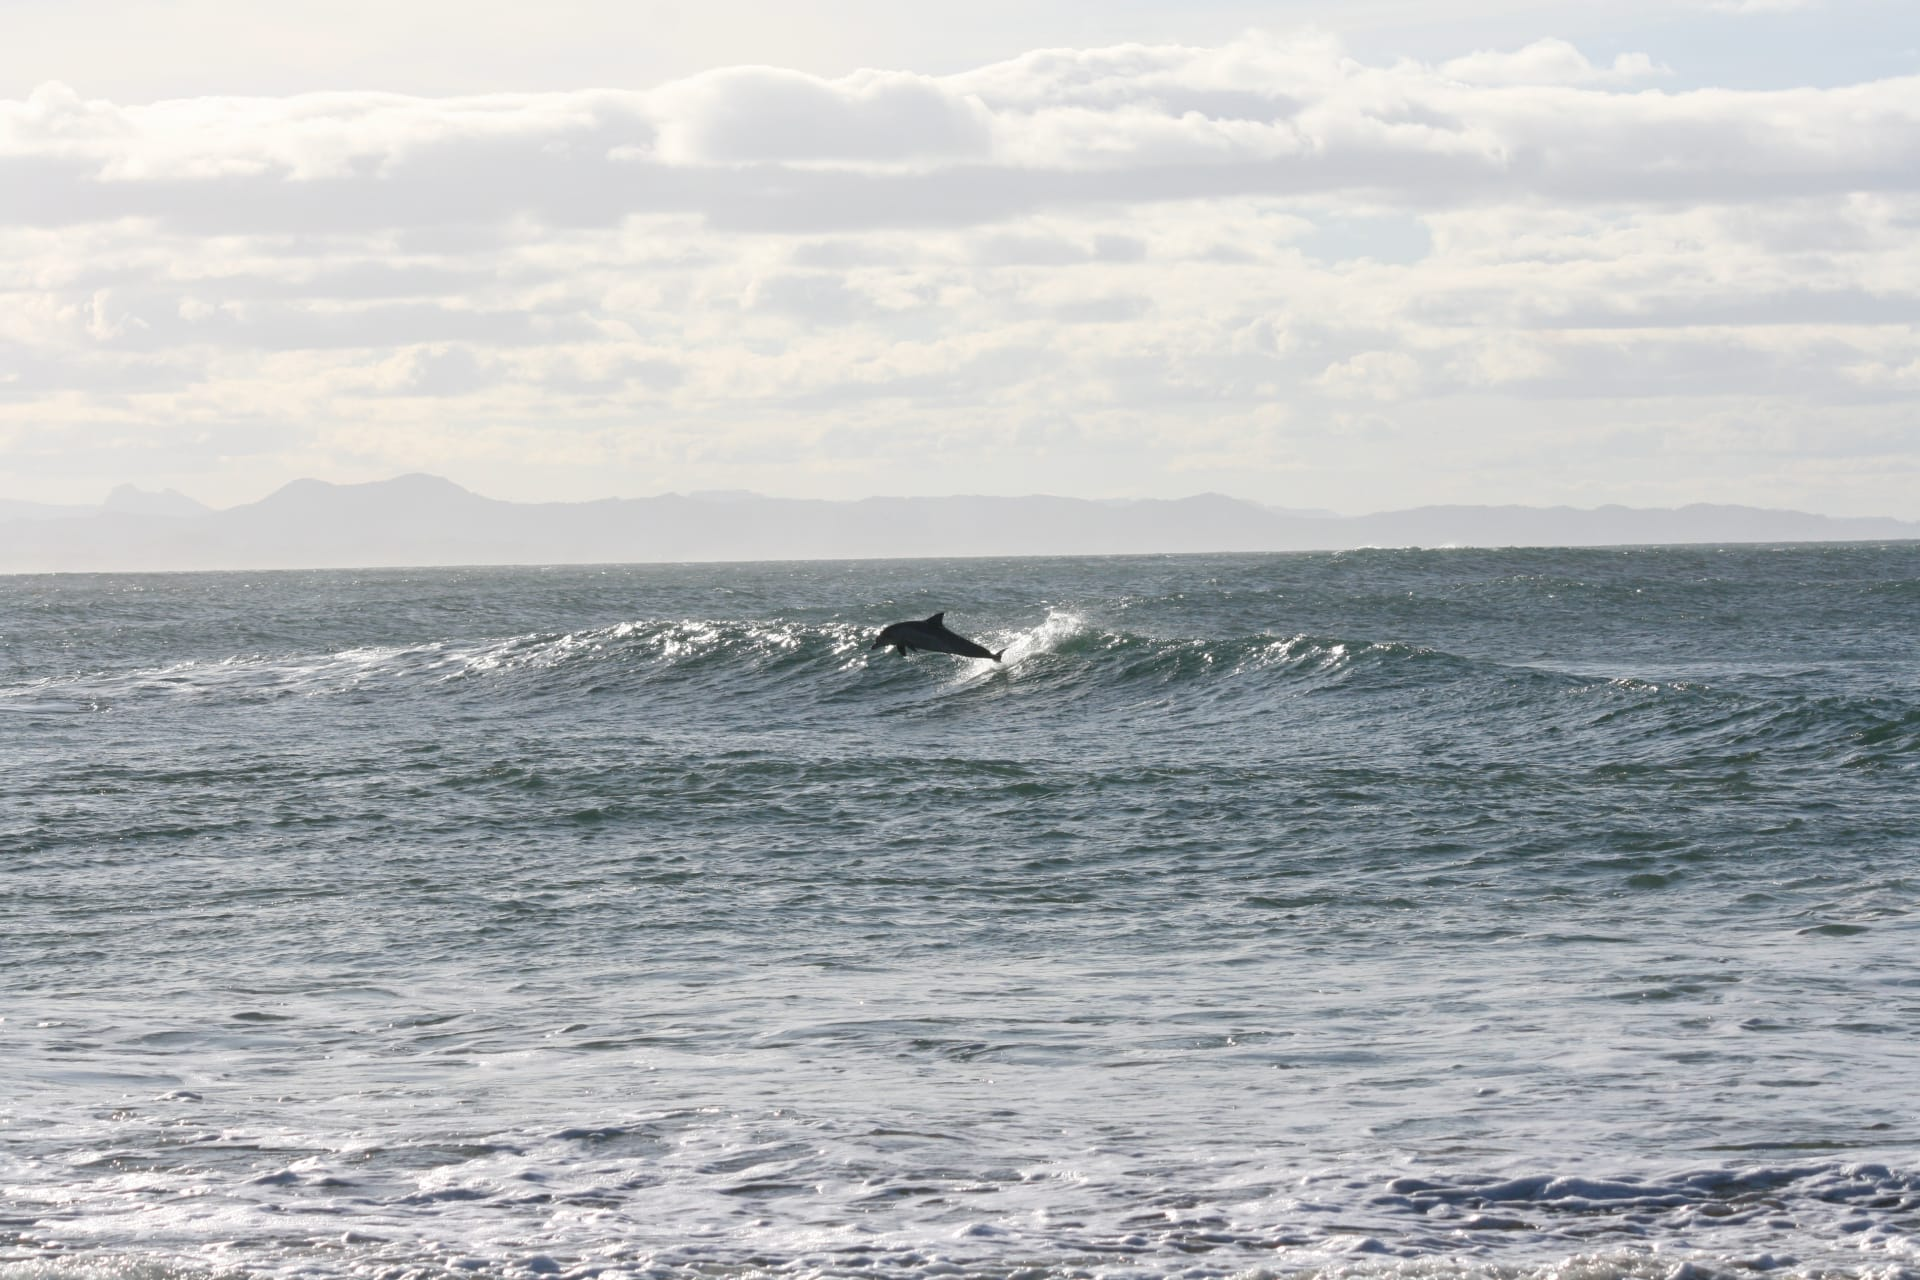 New South Wales - Road Trip Special: Relaxing Walk on Australia's Dolphin Beach